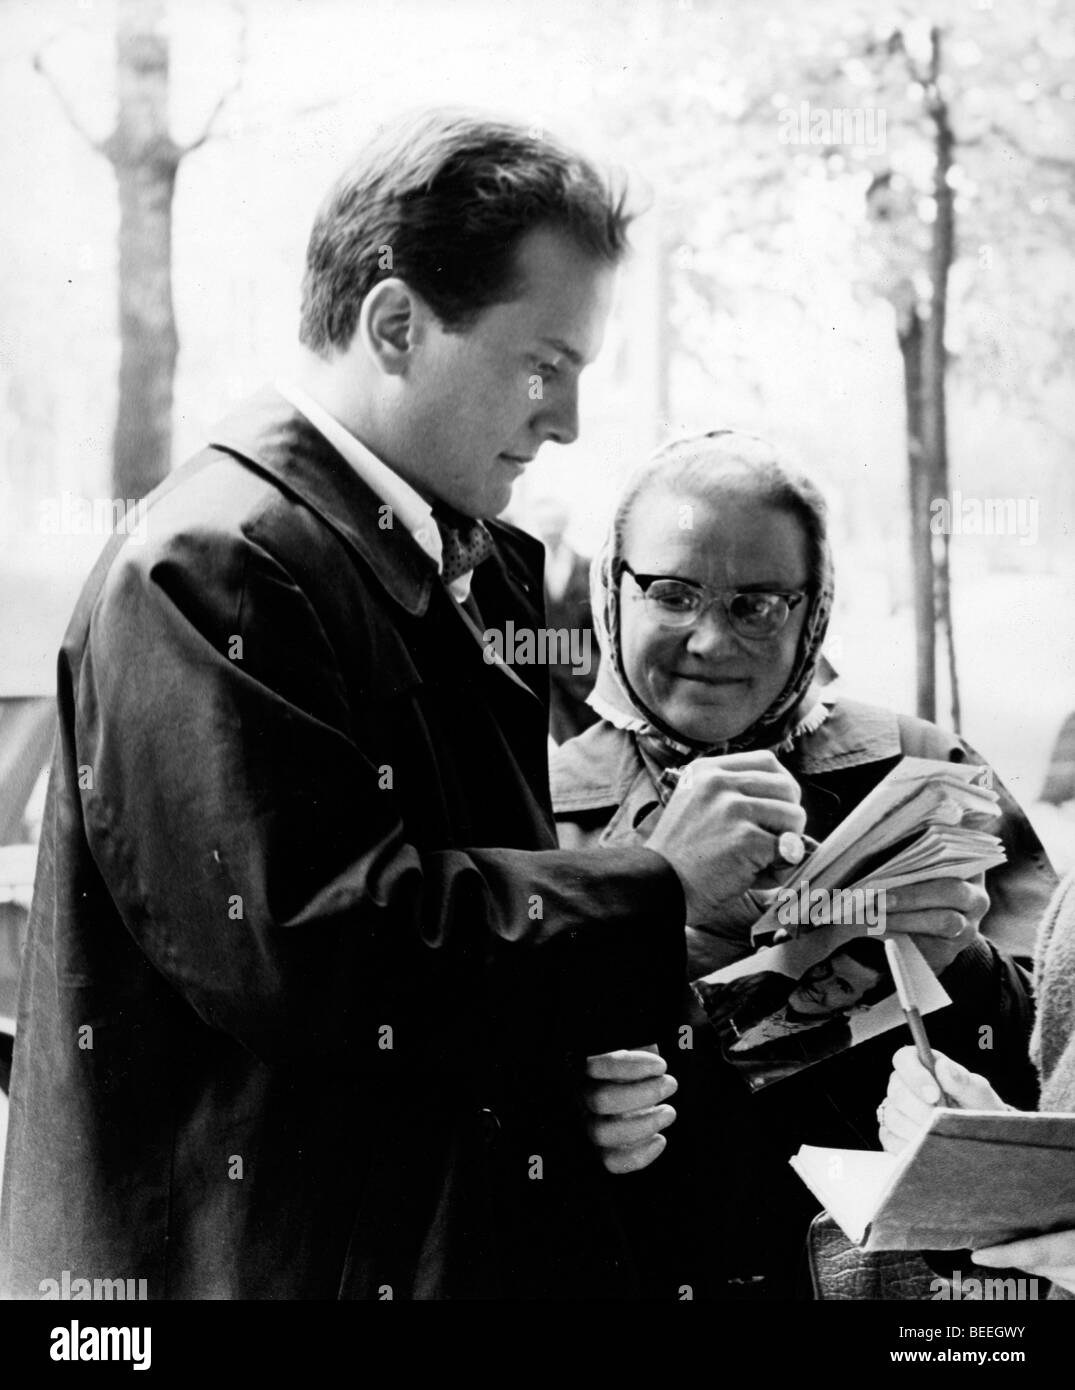 Singer PAT BOONE signs a autograph for a fan in the late 1950's. Stock Photo